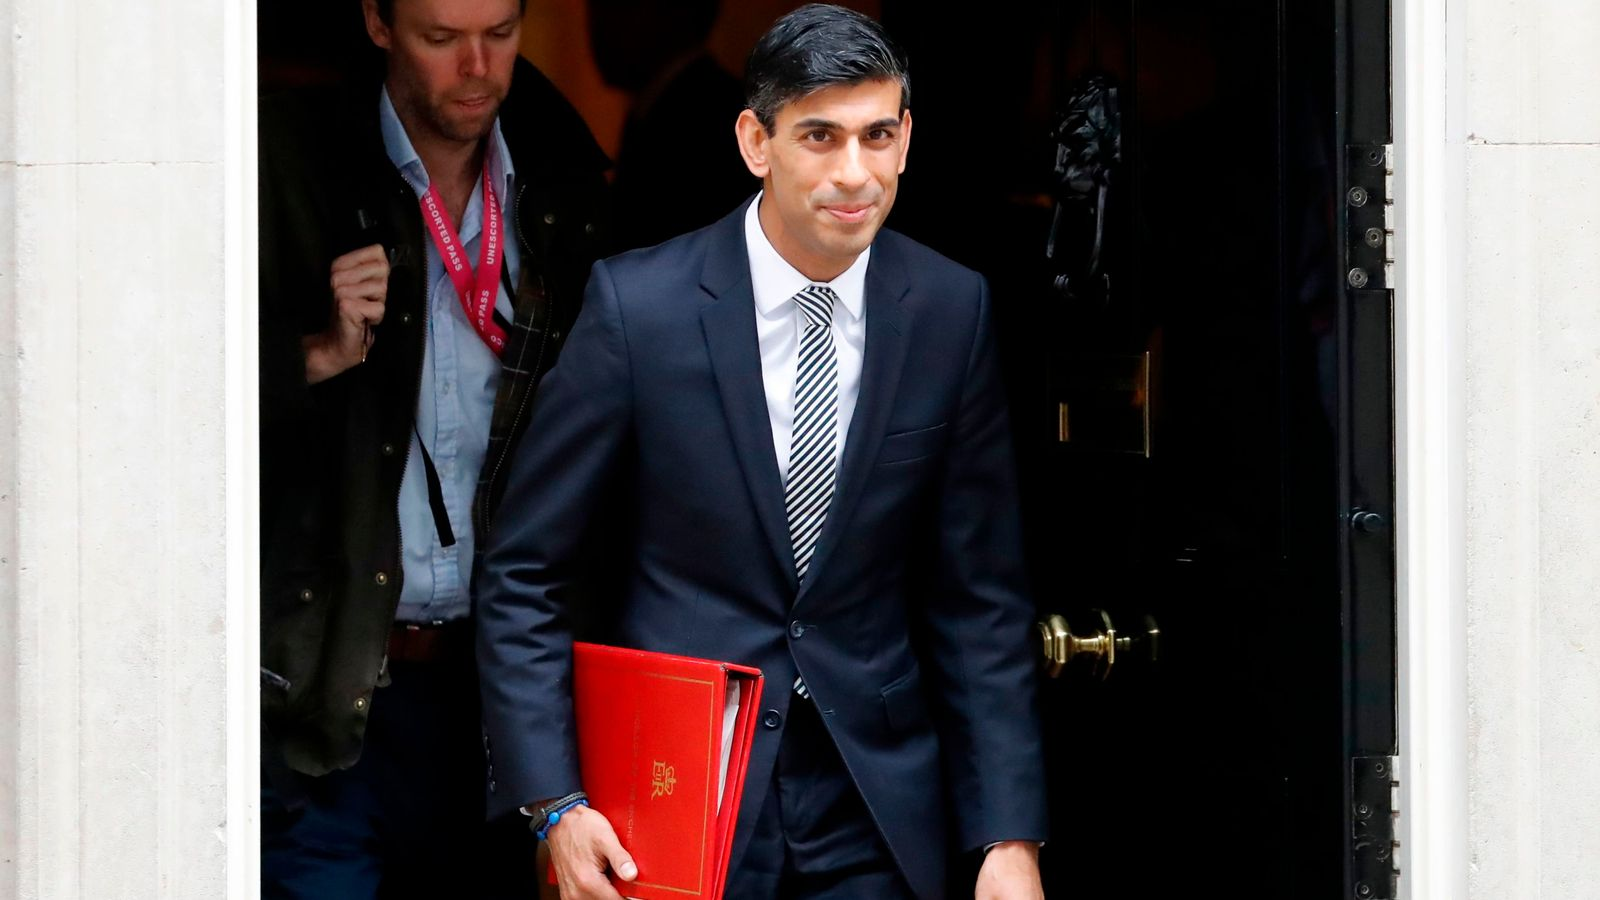 Chancellor Rishi Sunak has less cash to play with ahead of budget